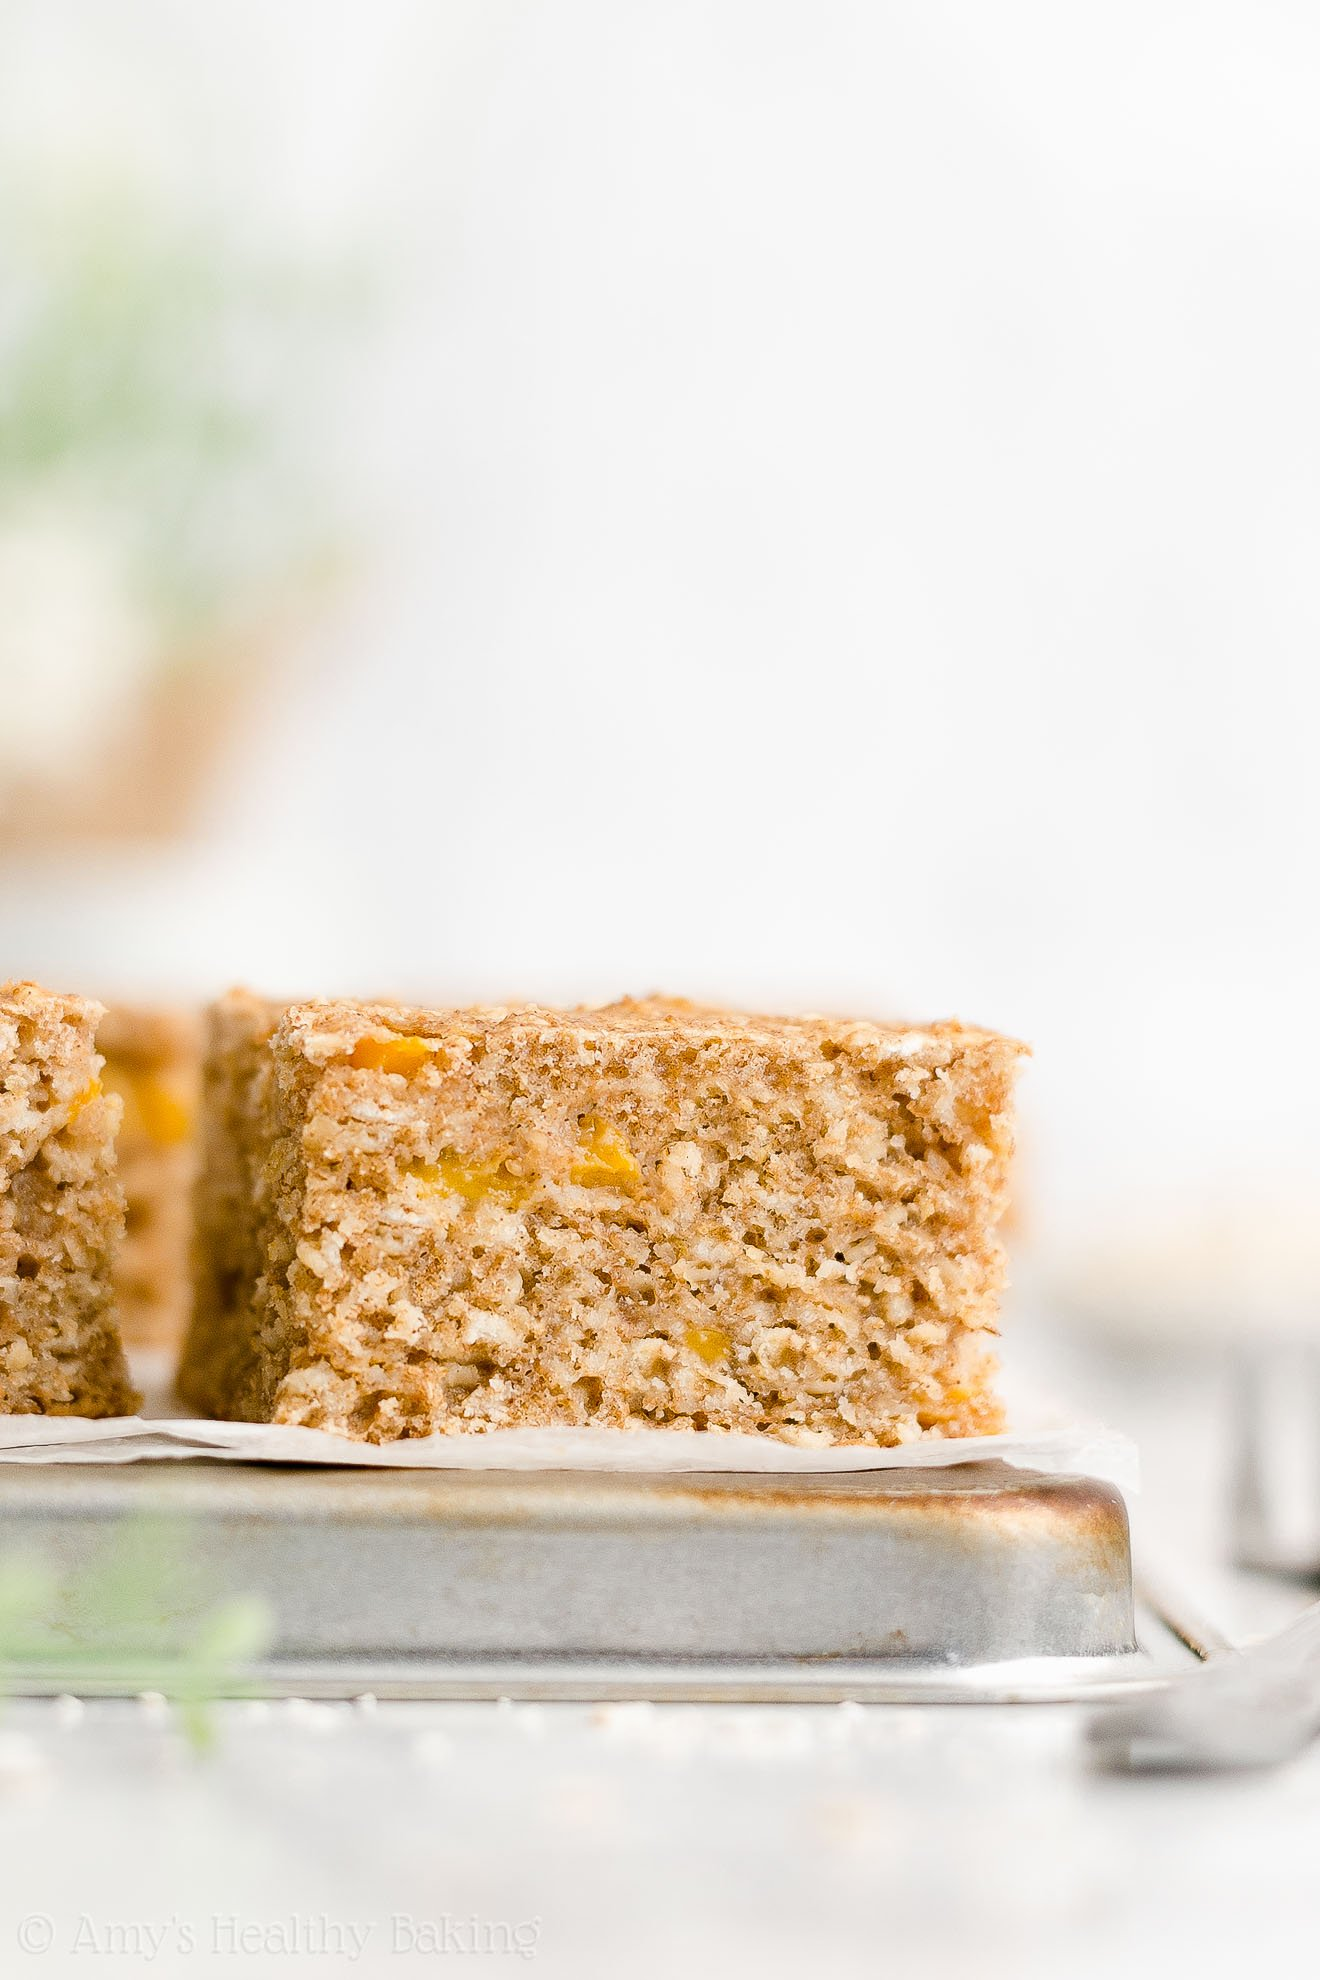 Healthy Clean Eating Low Calorie Greek Yogurt Peach Oatmeal Breakfast Cake